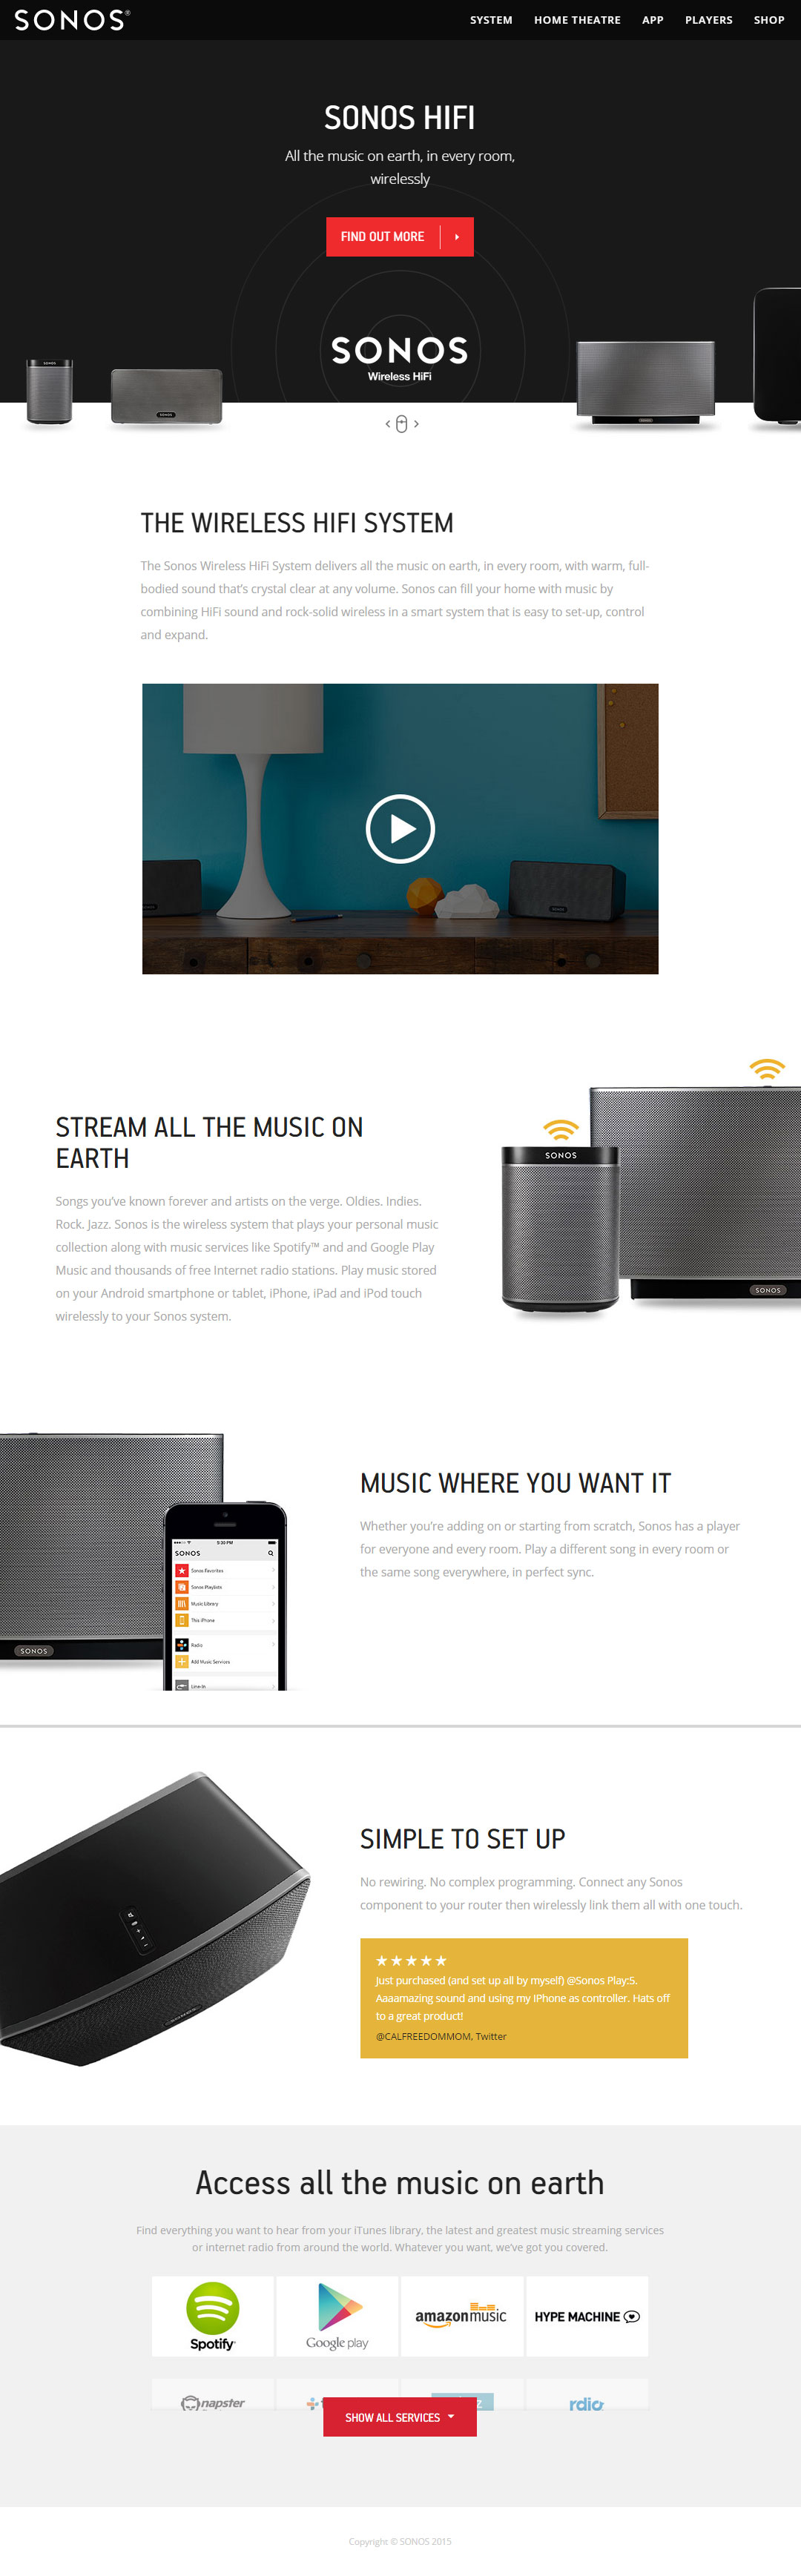 SONOS website screenshot